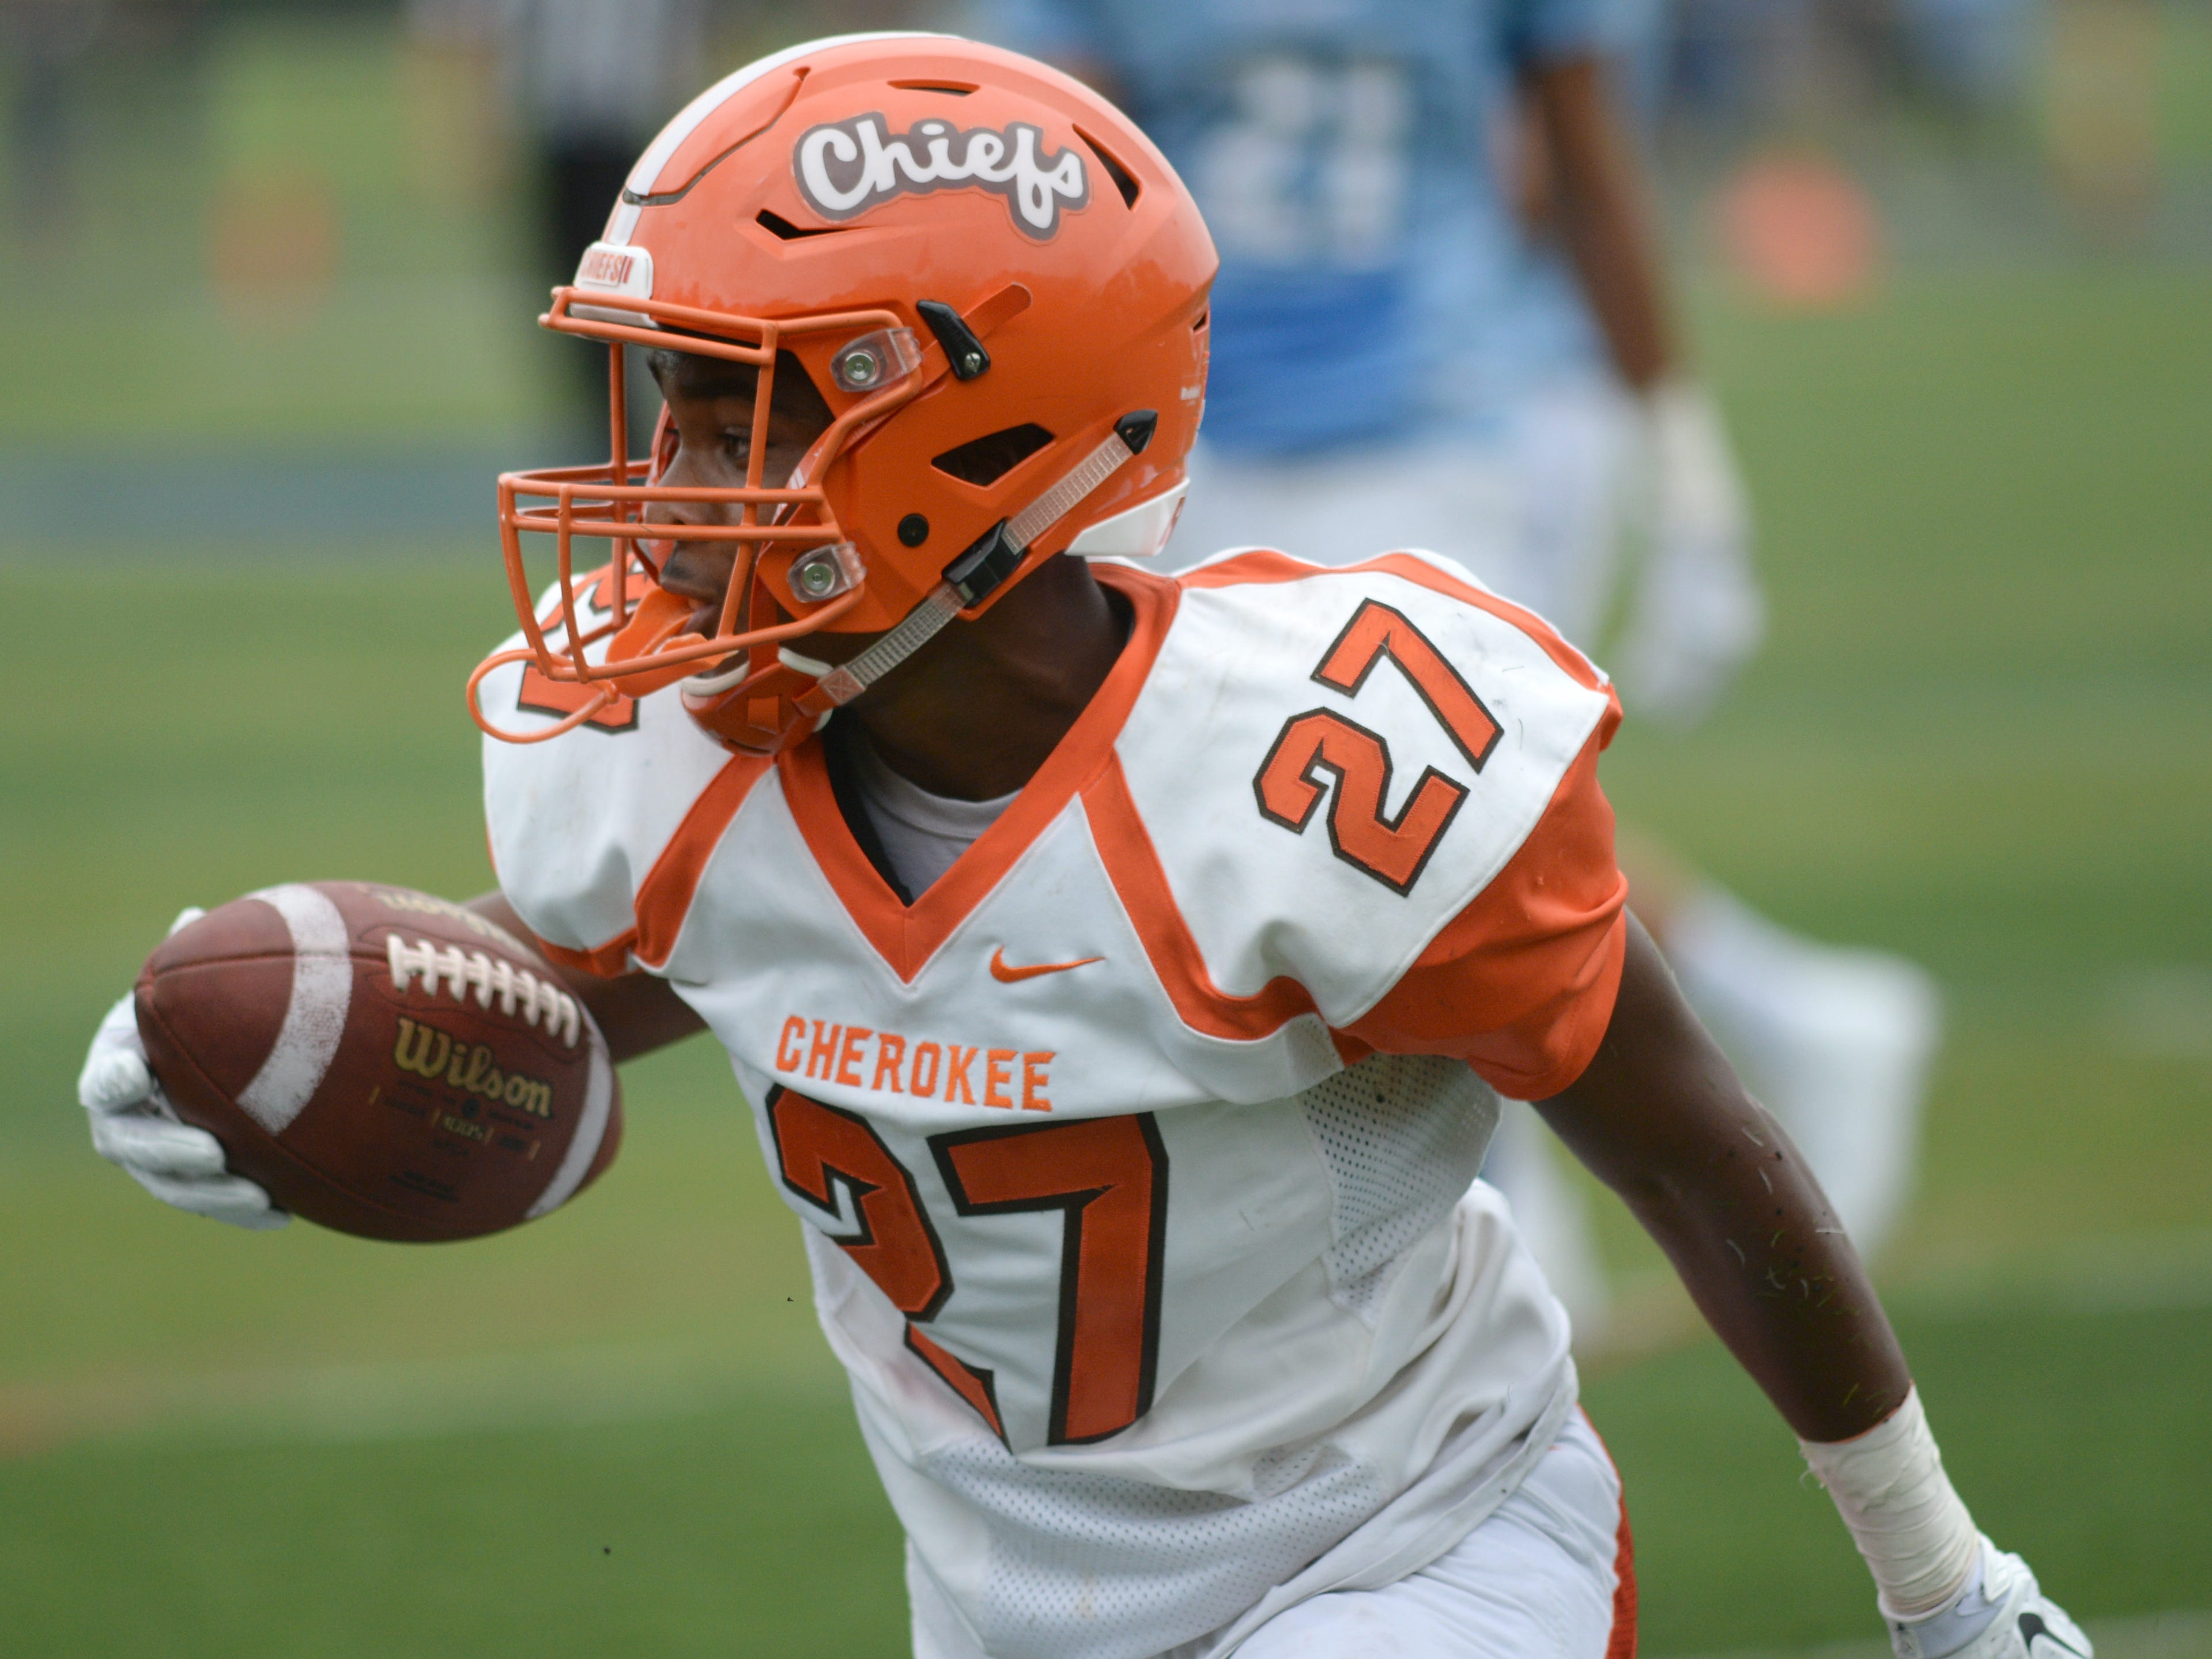 Cherokee's Darnell Hightower celebrates after catching a touchdown pass during Saturday's football game against Shawnee at Shawnee High School,  Sept. 8, 2018.